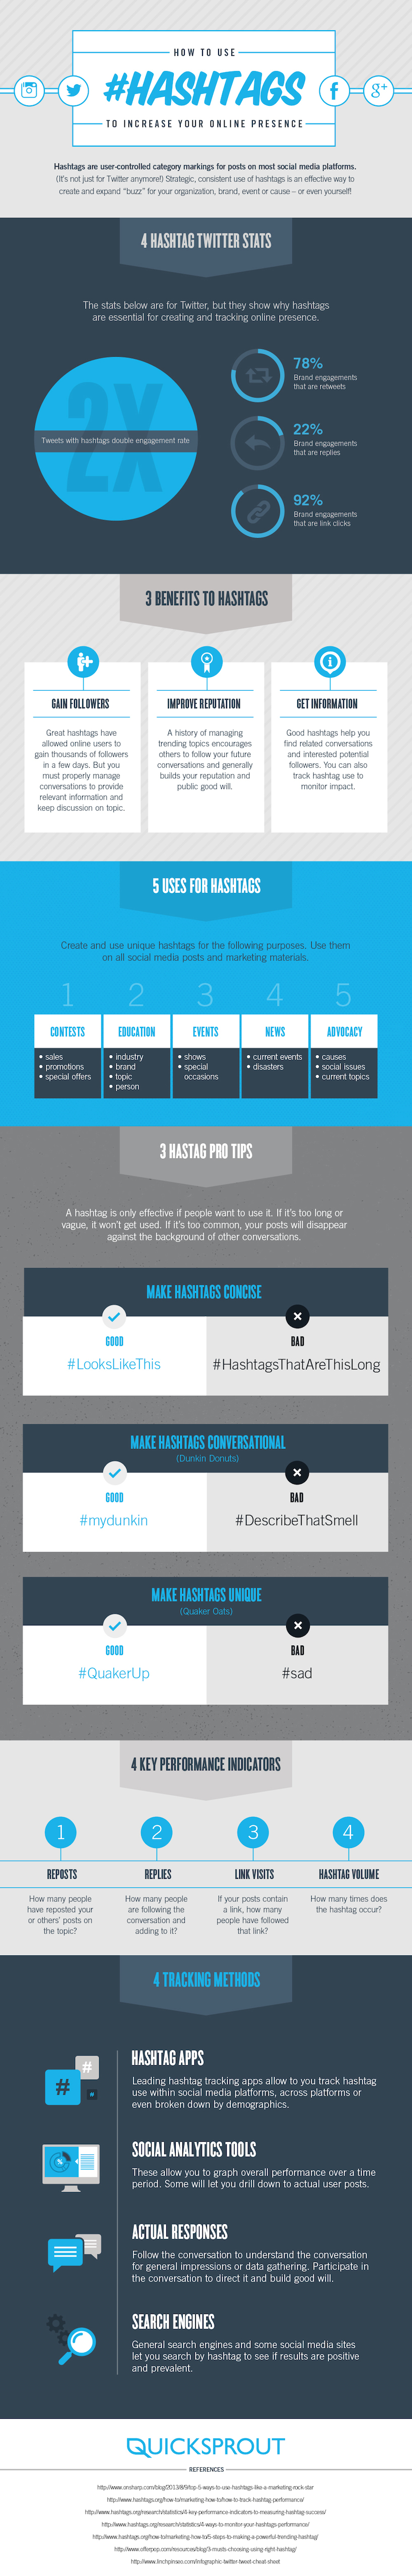 How to Use Hashtags to Increase Your Online Presence